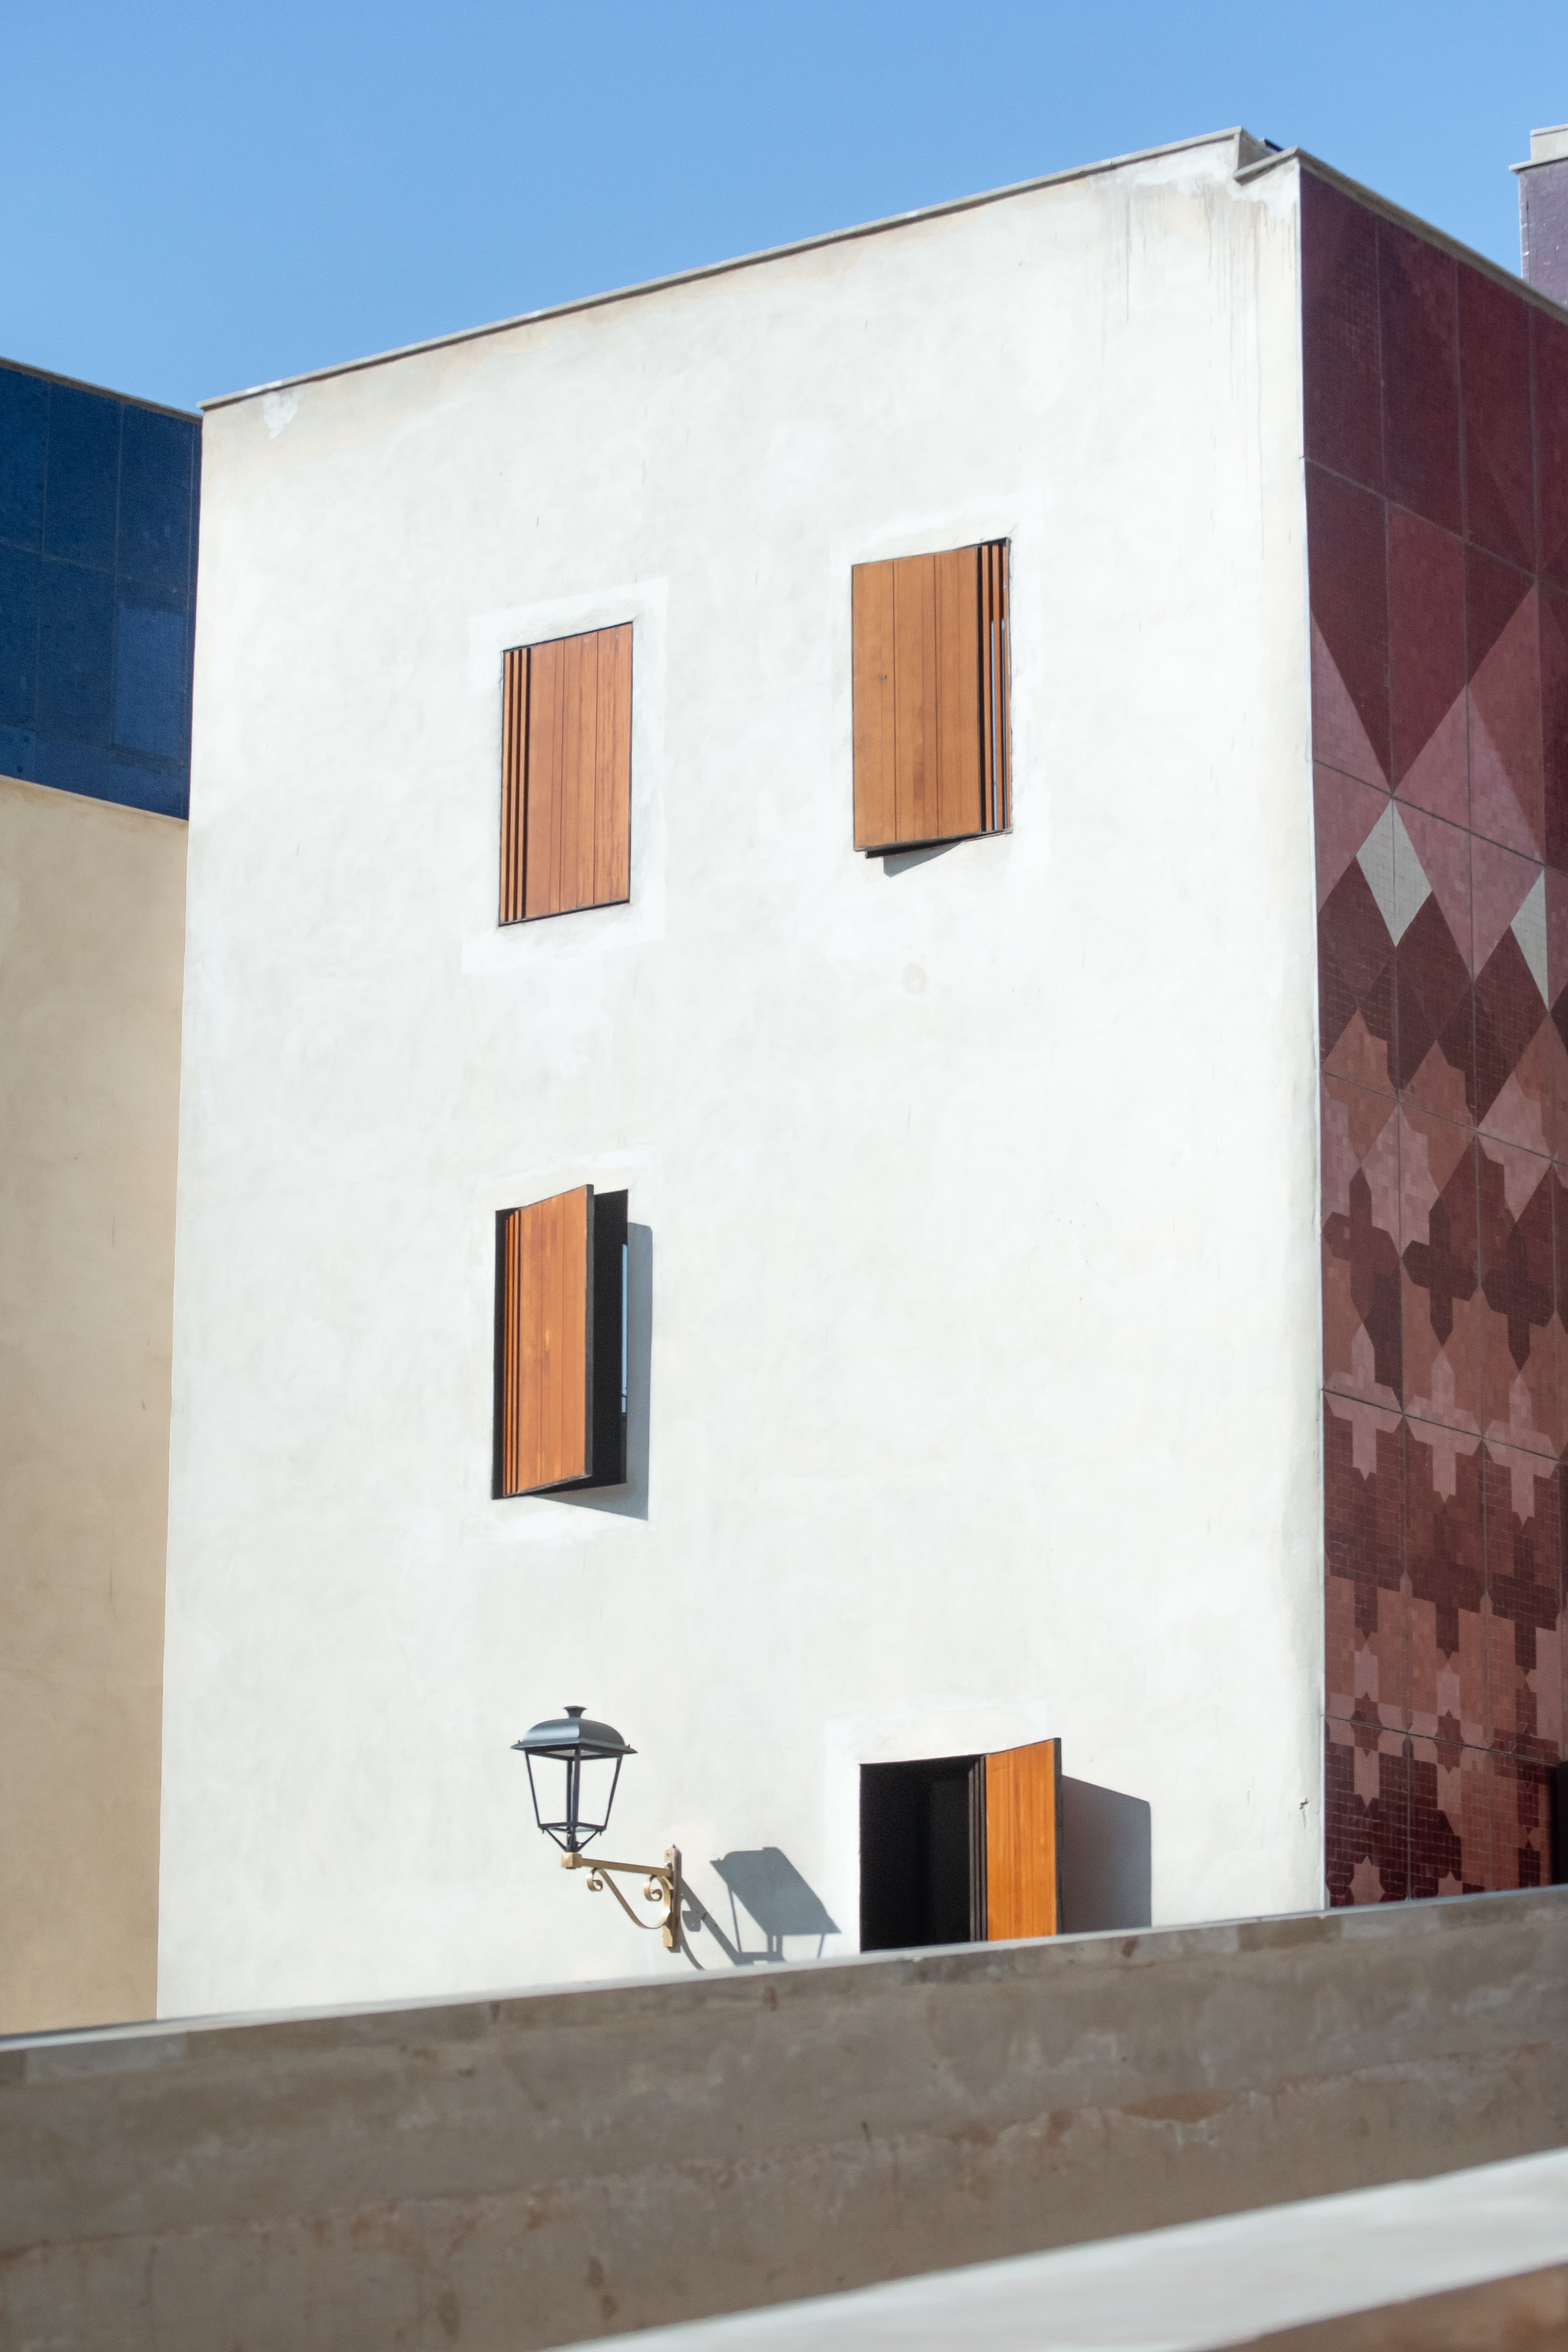 white and brown concrete building at daytime